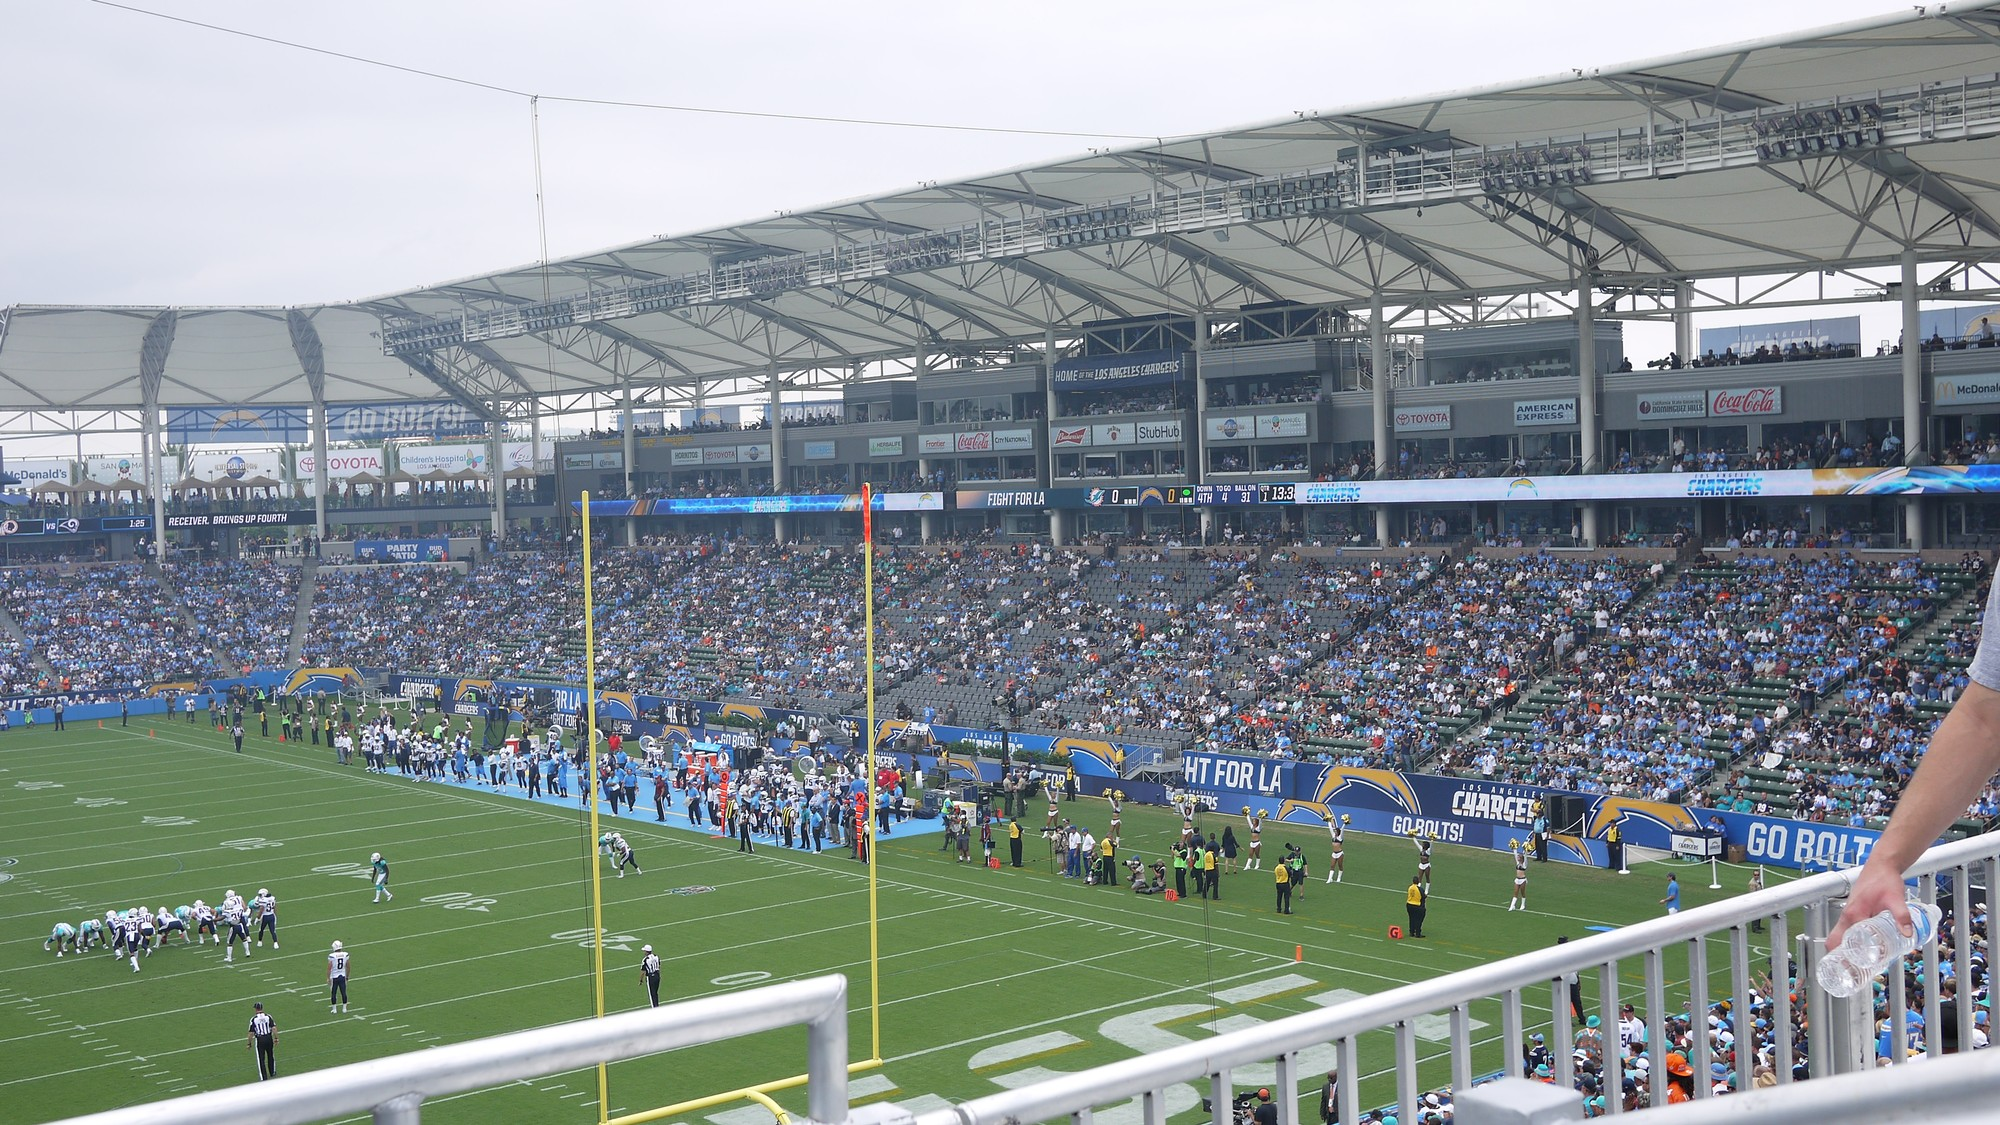 2c0a673f The Darkest, Saddest Place in Sports: A Los Angeles Chargers Home ...